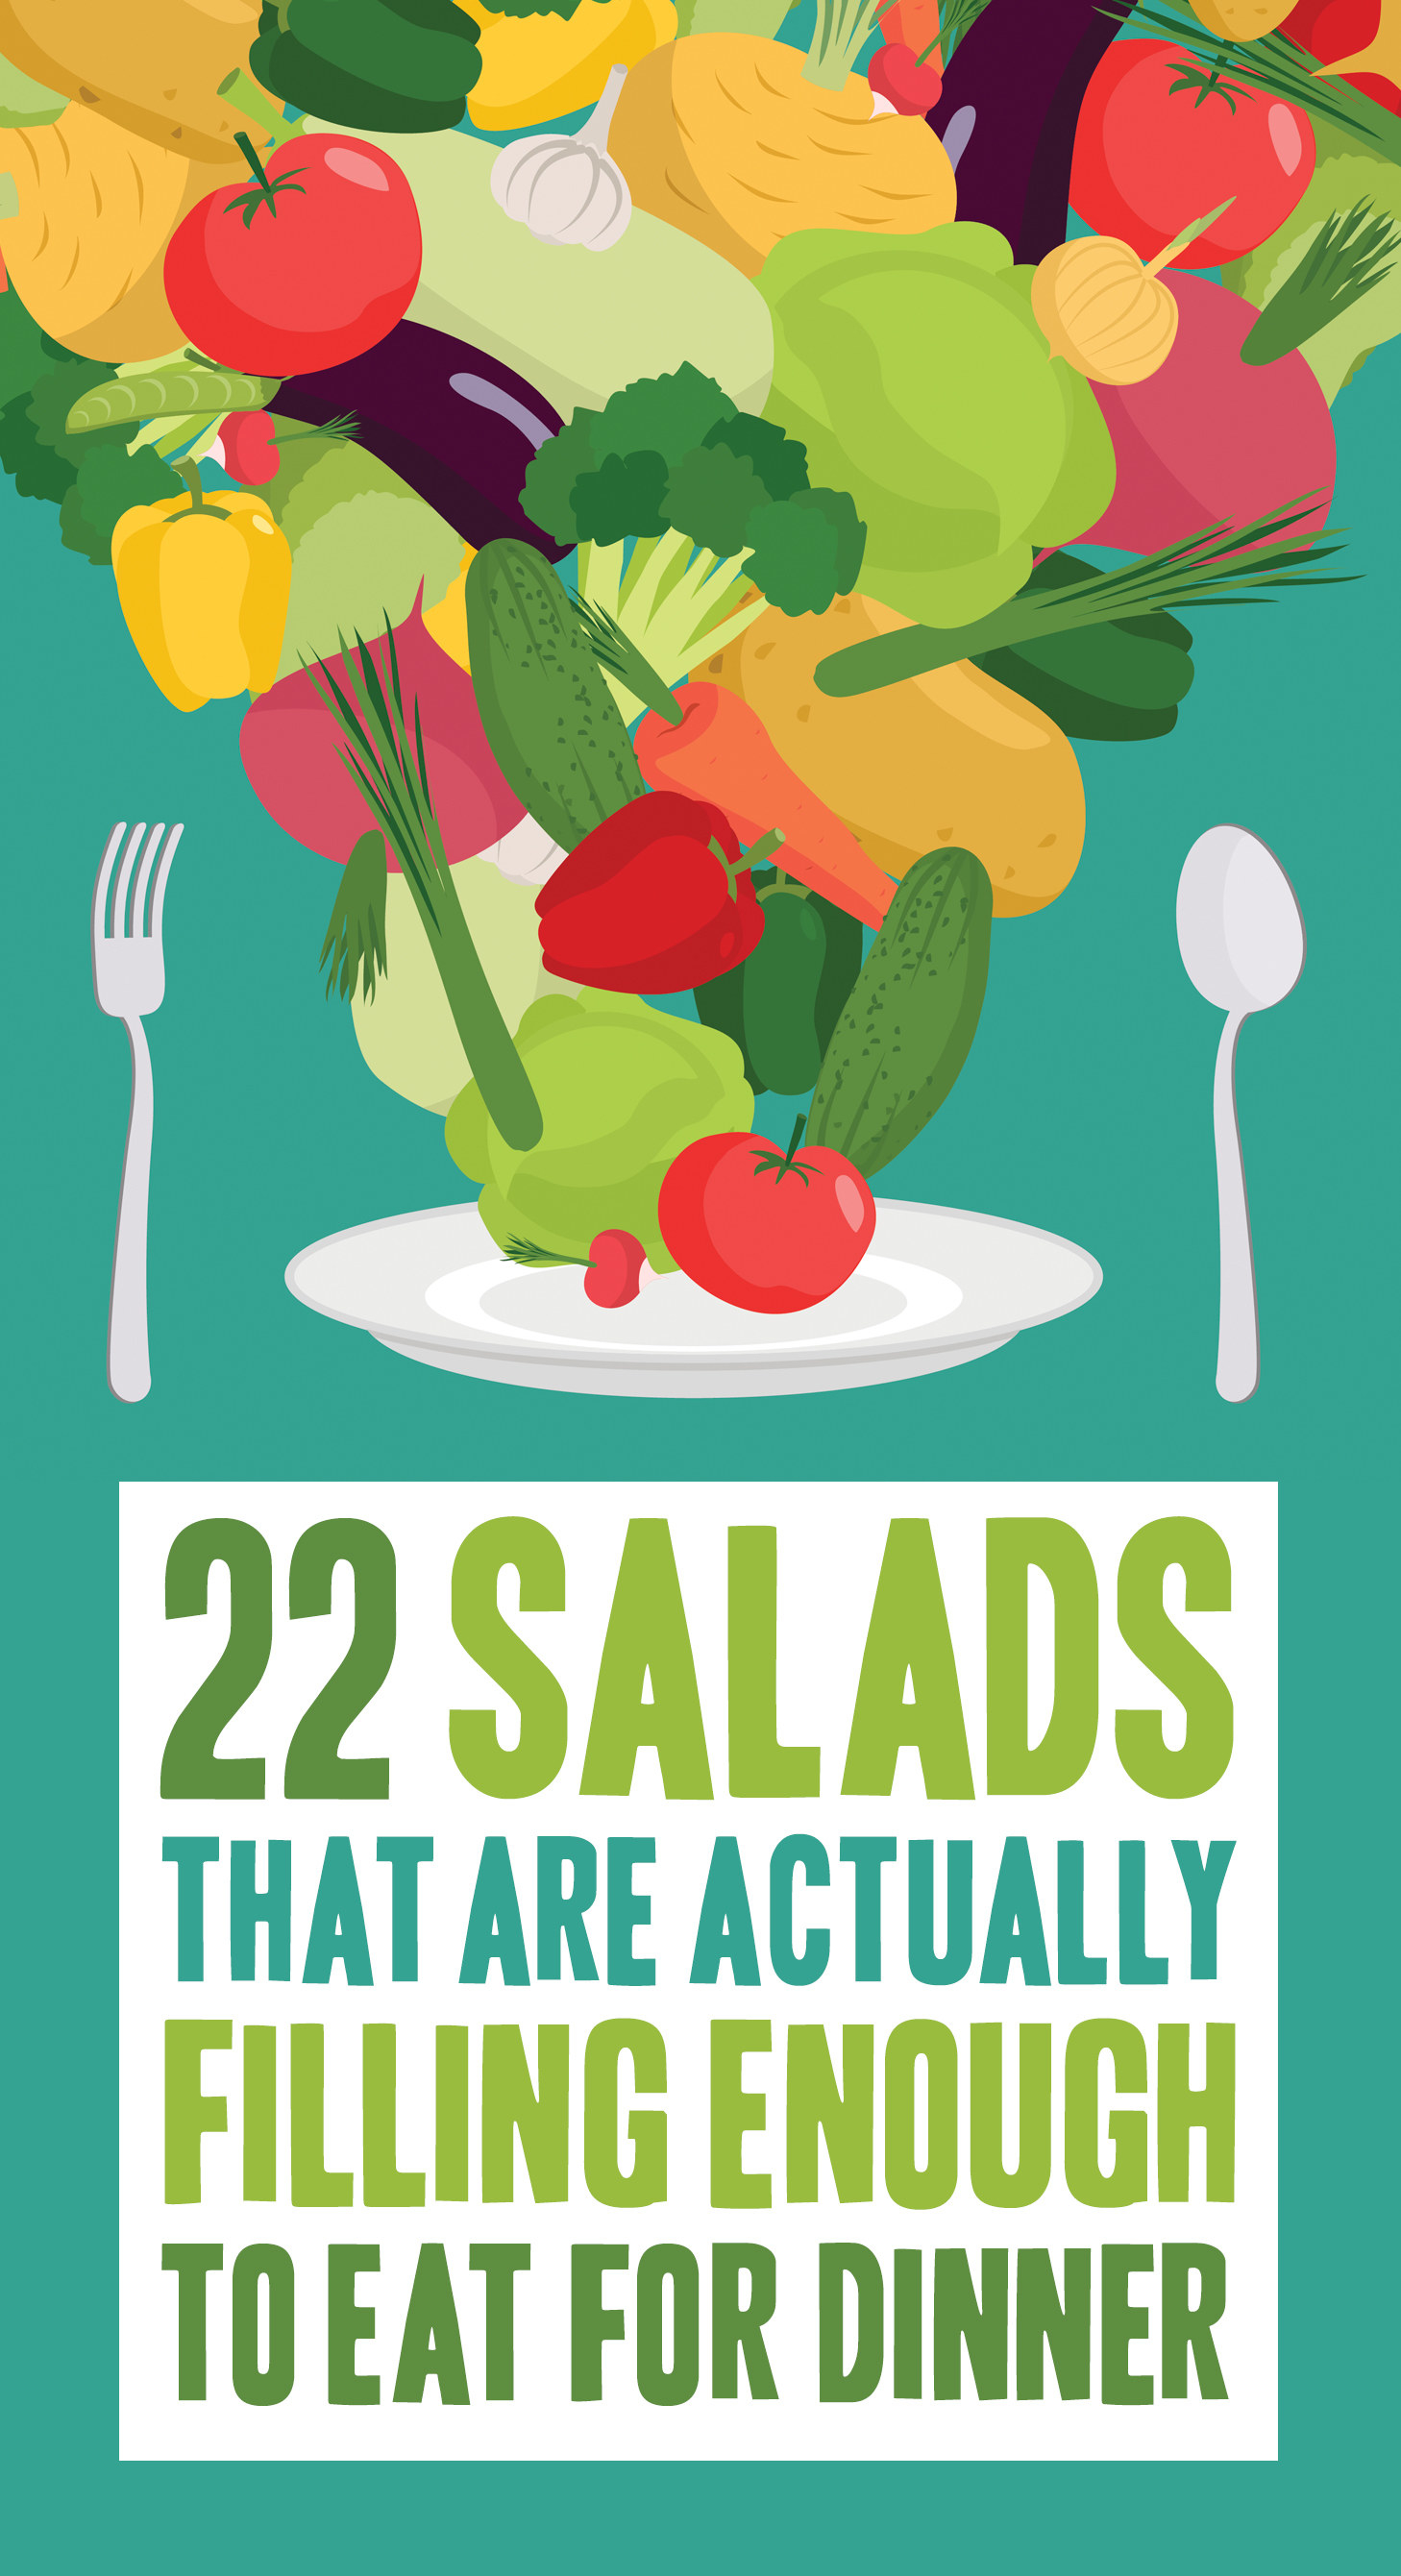 22 Delicious Salads That Are Actually Filling Enough To Eat For Dinner